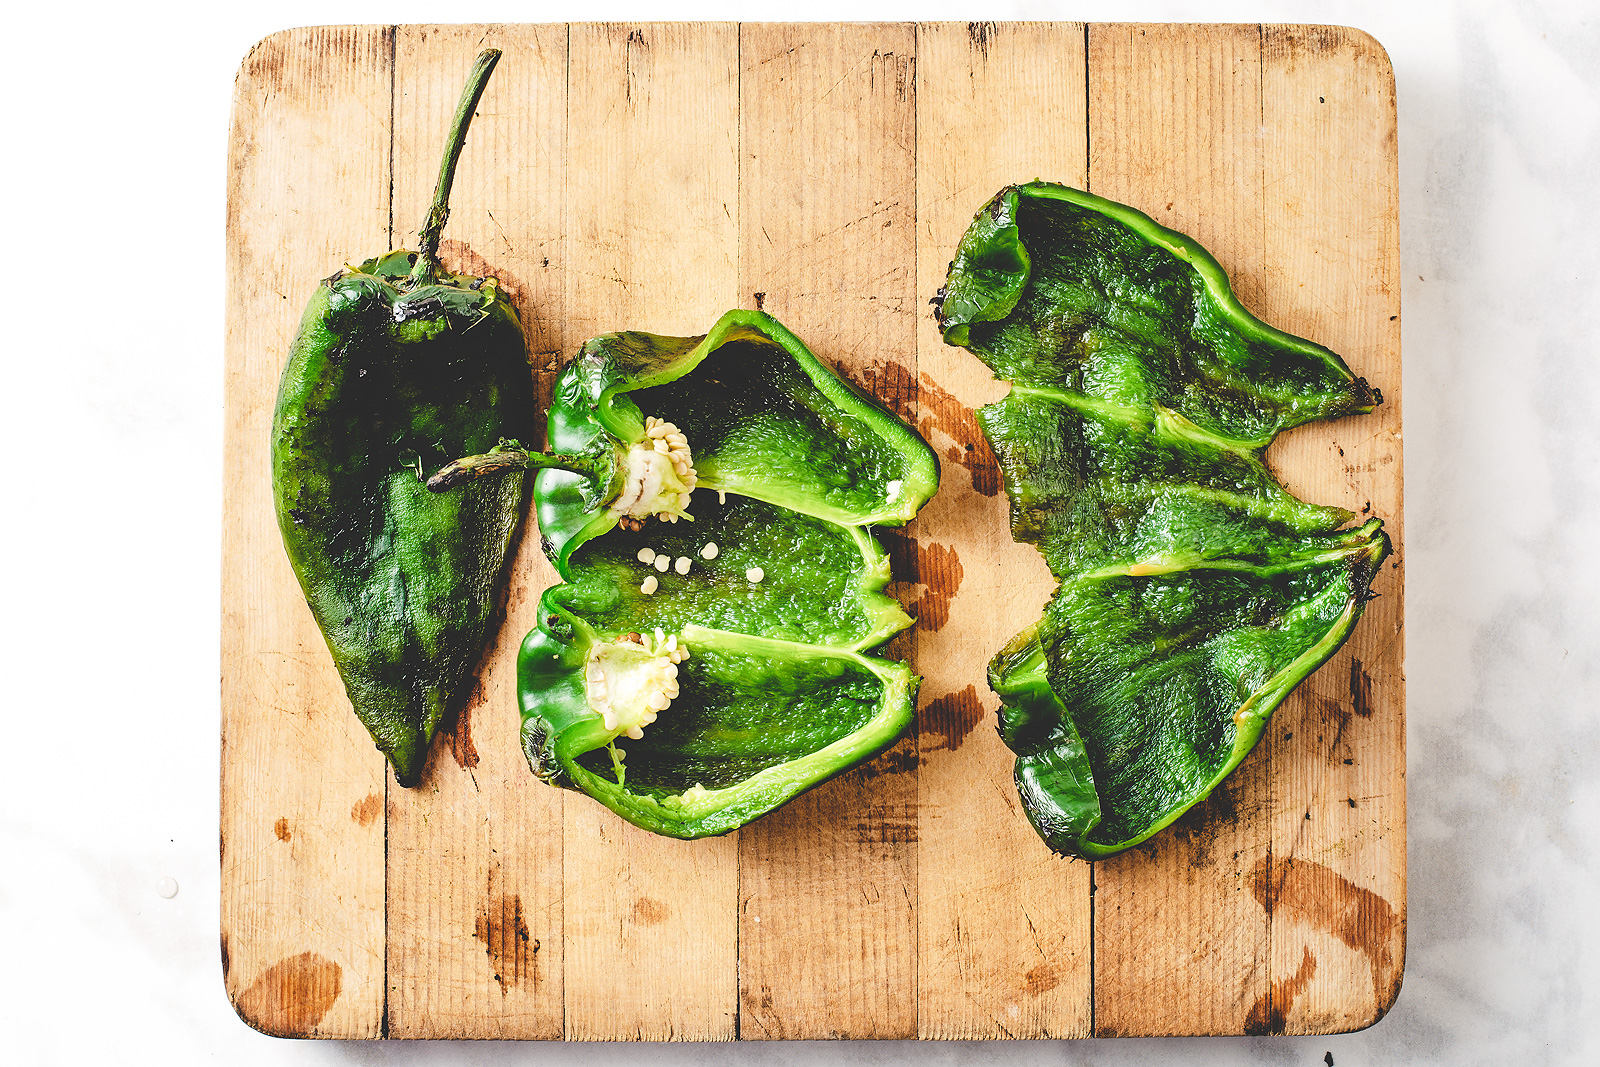 The steps to removing seeds from a roasted poblano pepper.